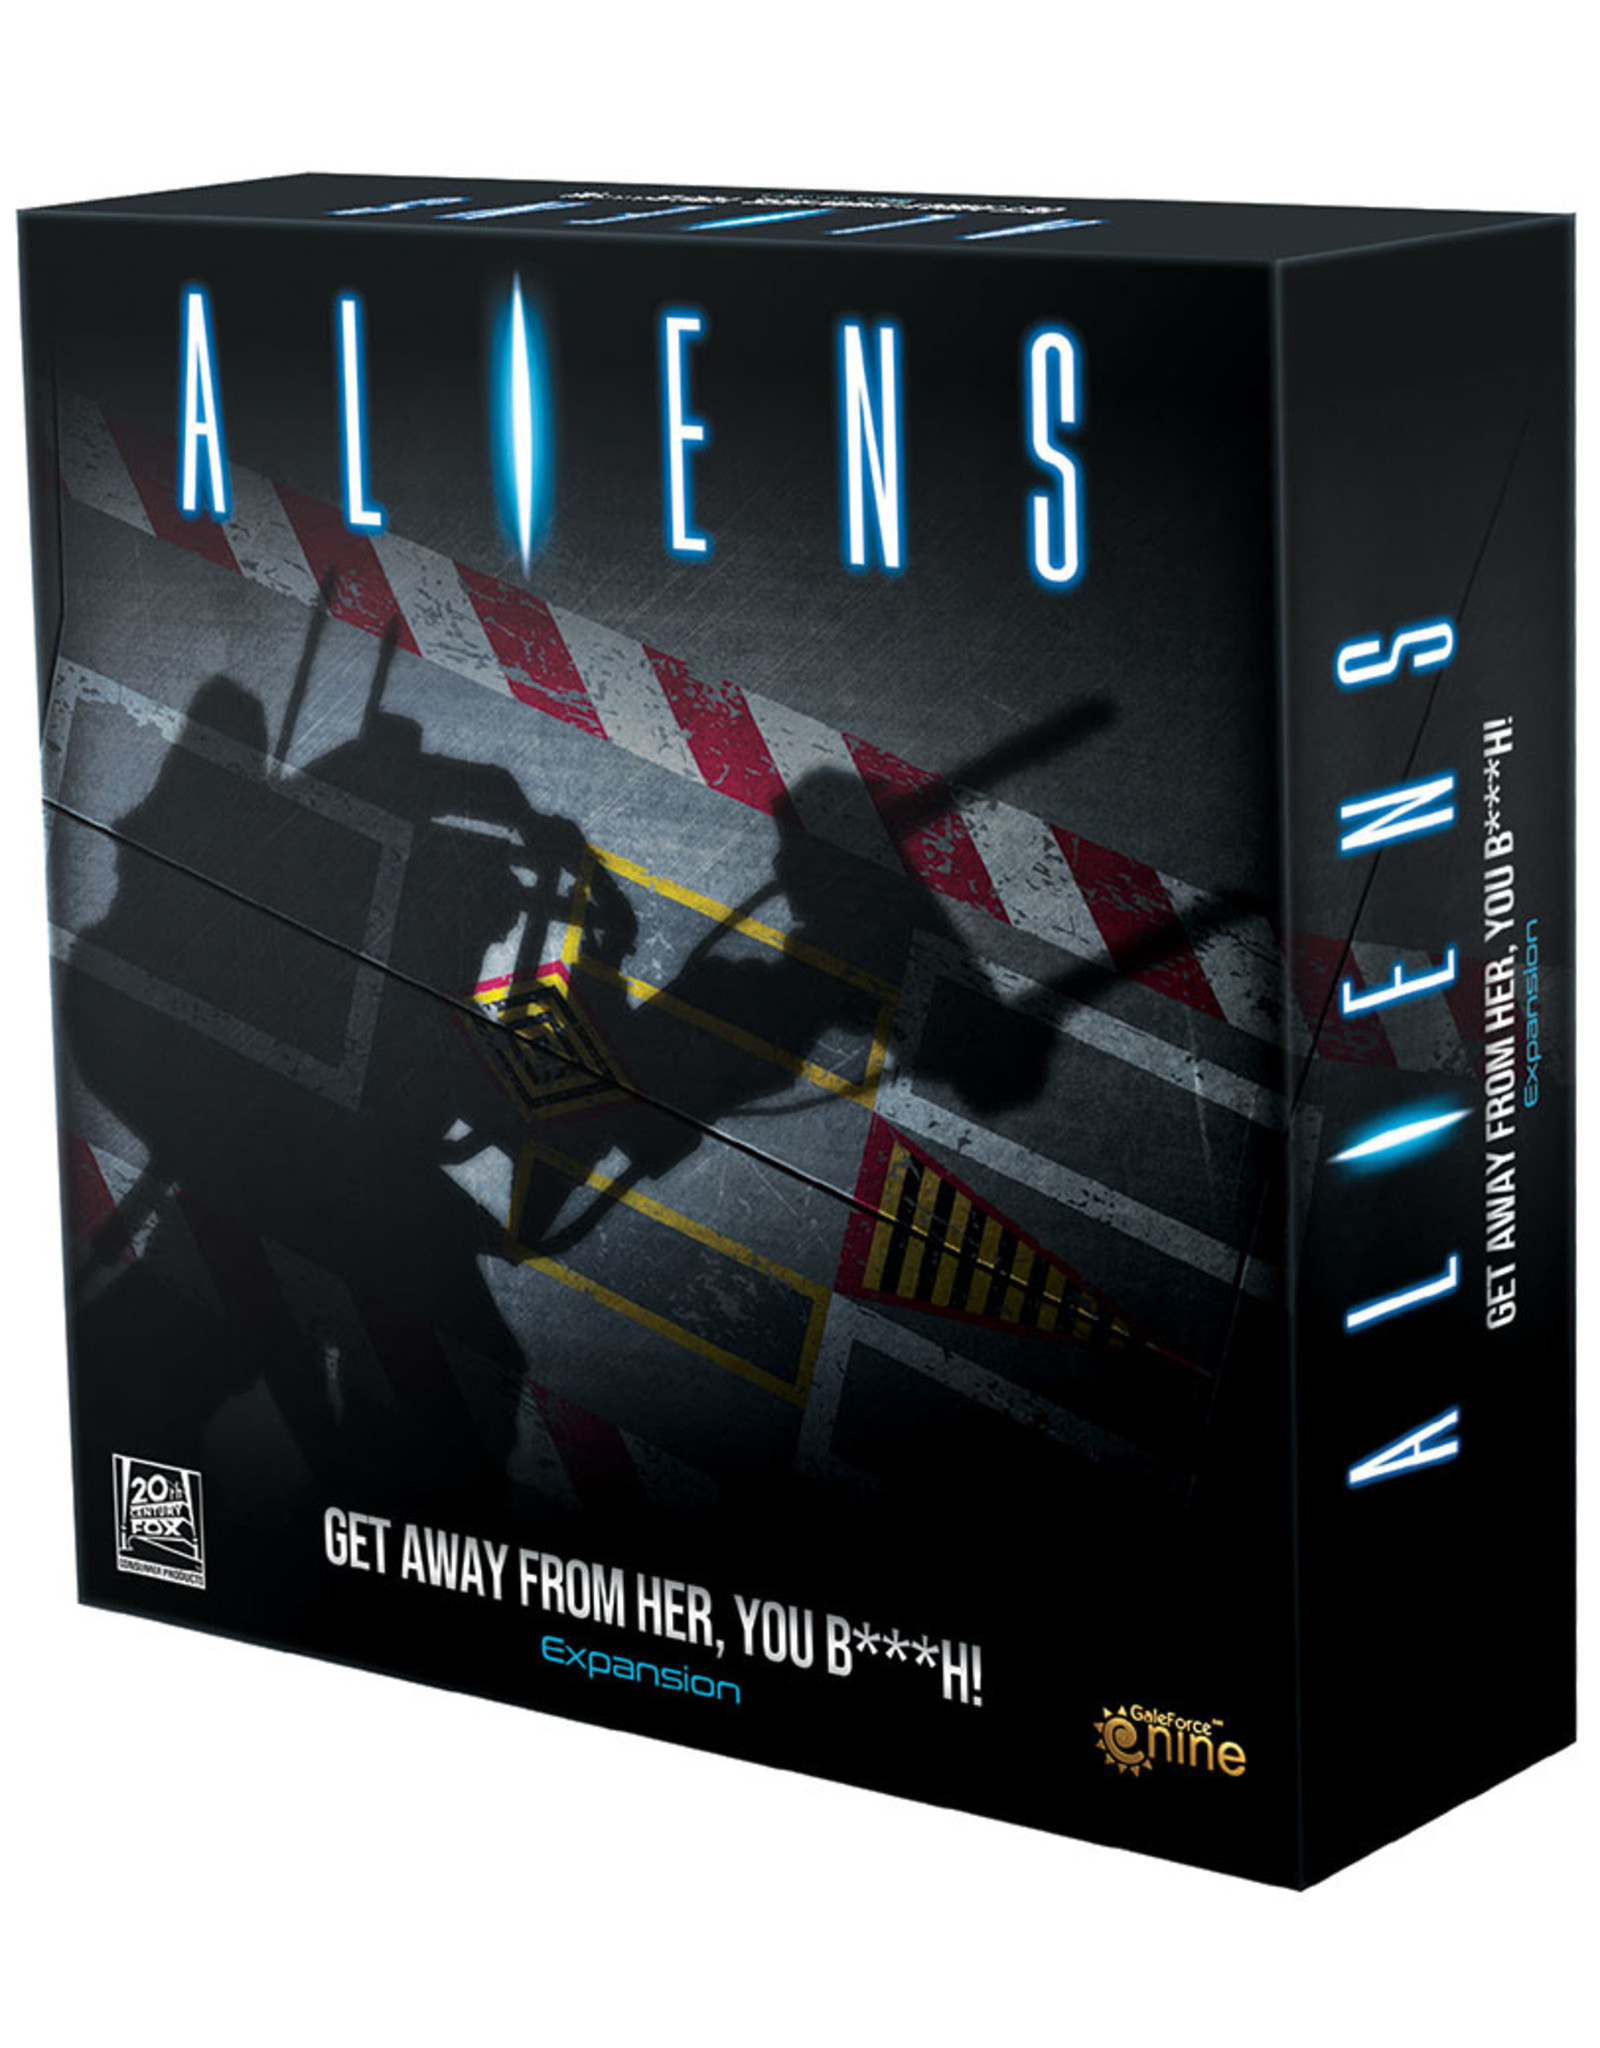 Gale Force 9 Aliens Board Game: Get Away From Her You B###h! Expansion